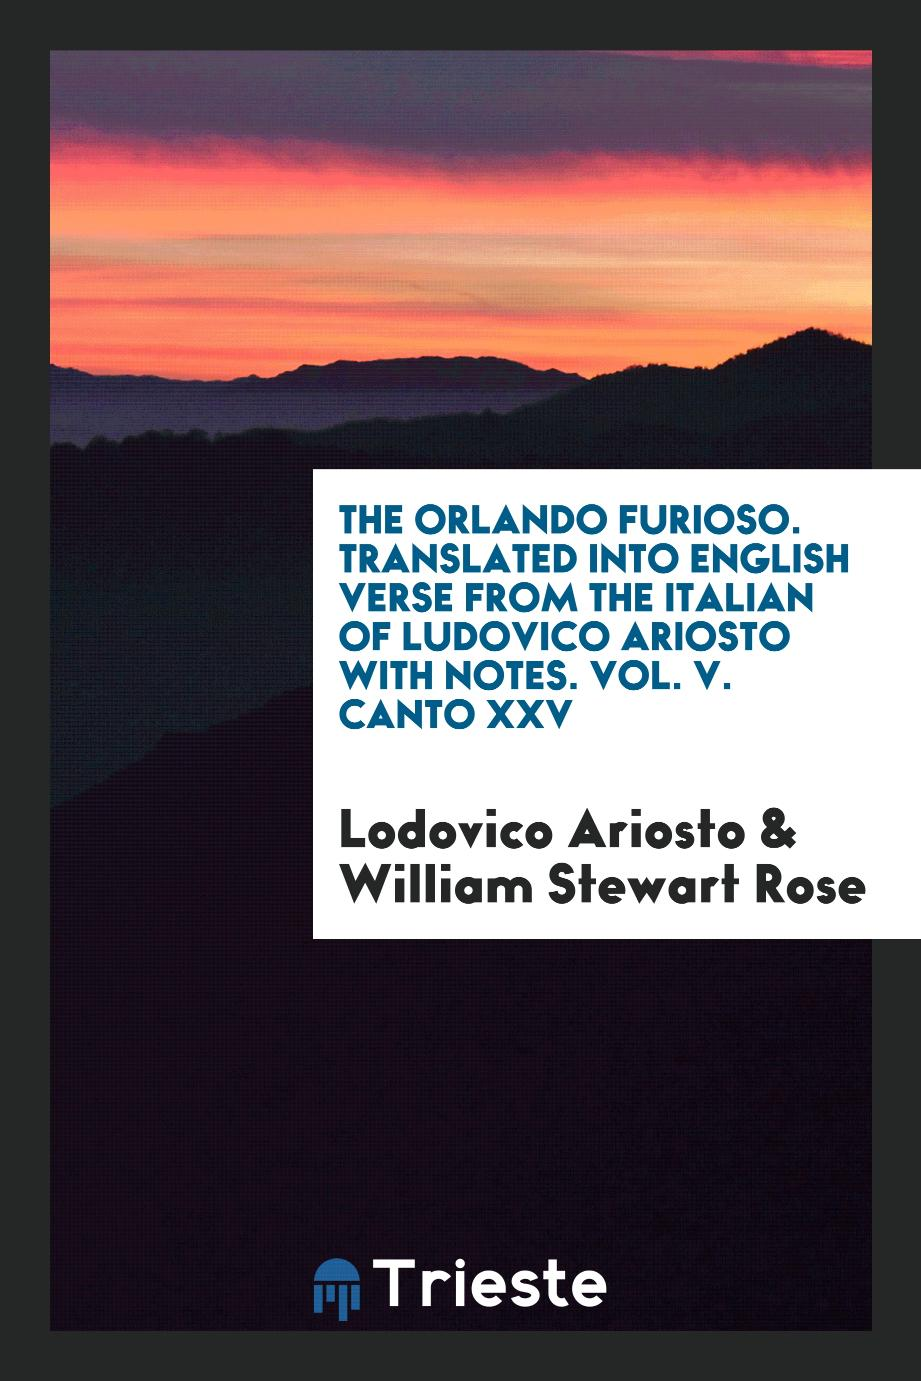 The Orlando Furioso. Translated into English Verse from the Italian of Ludovico Ariosto with Notes. Vol. V. Canto XXV